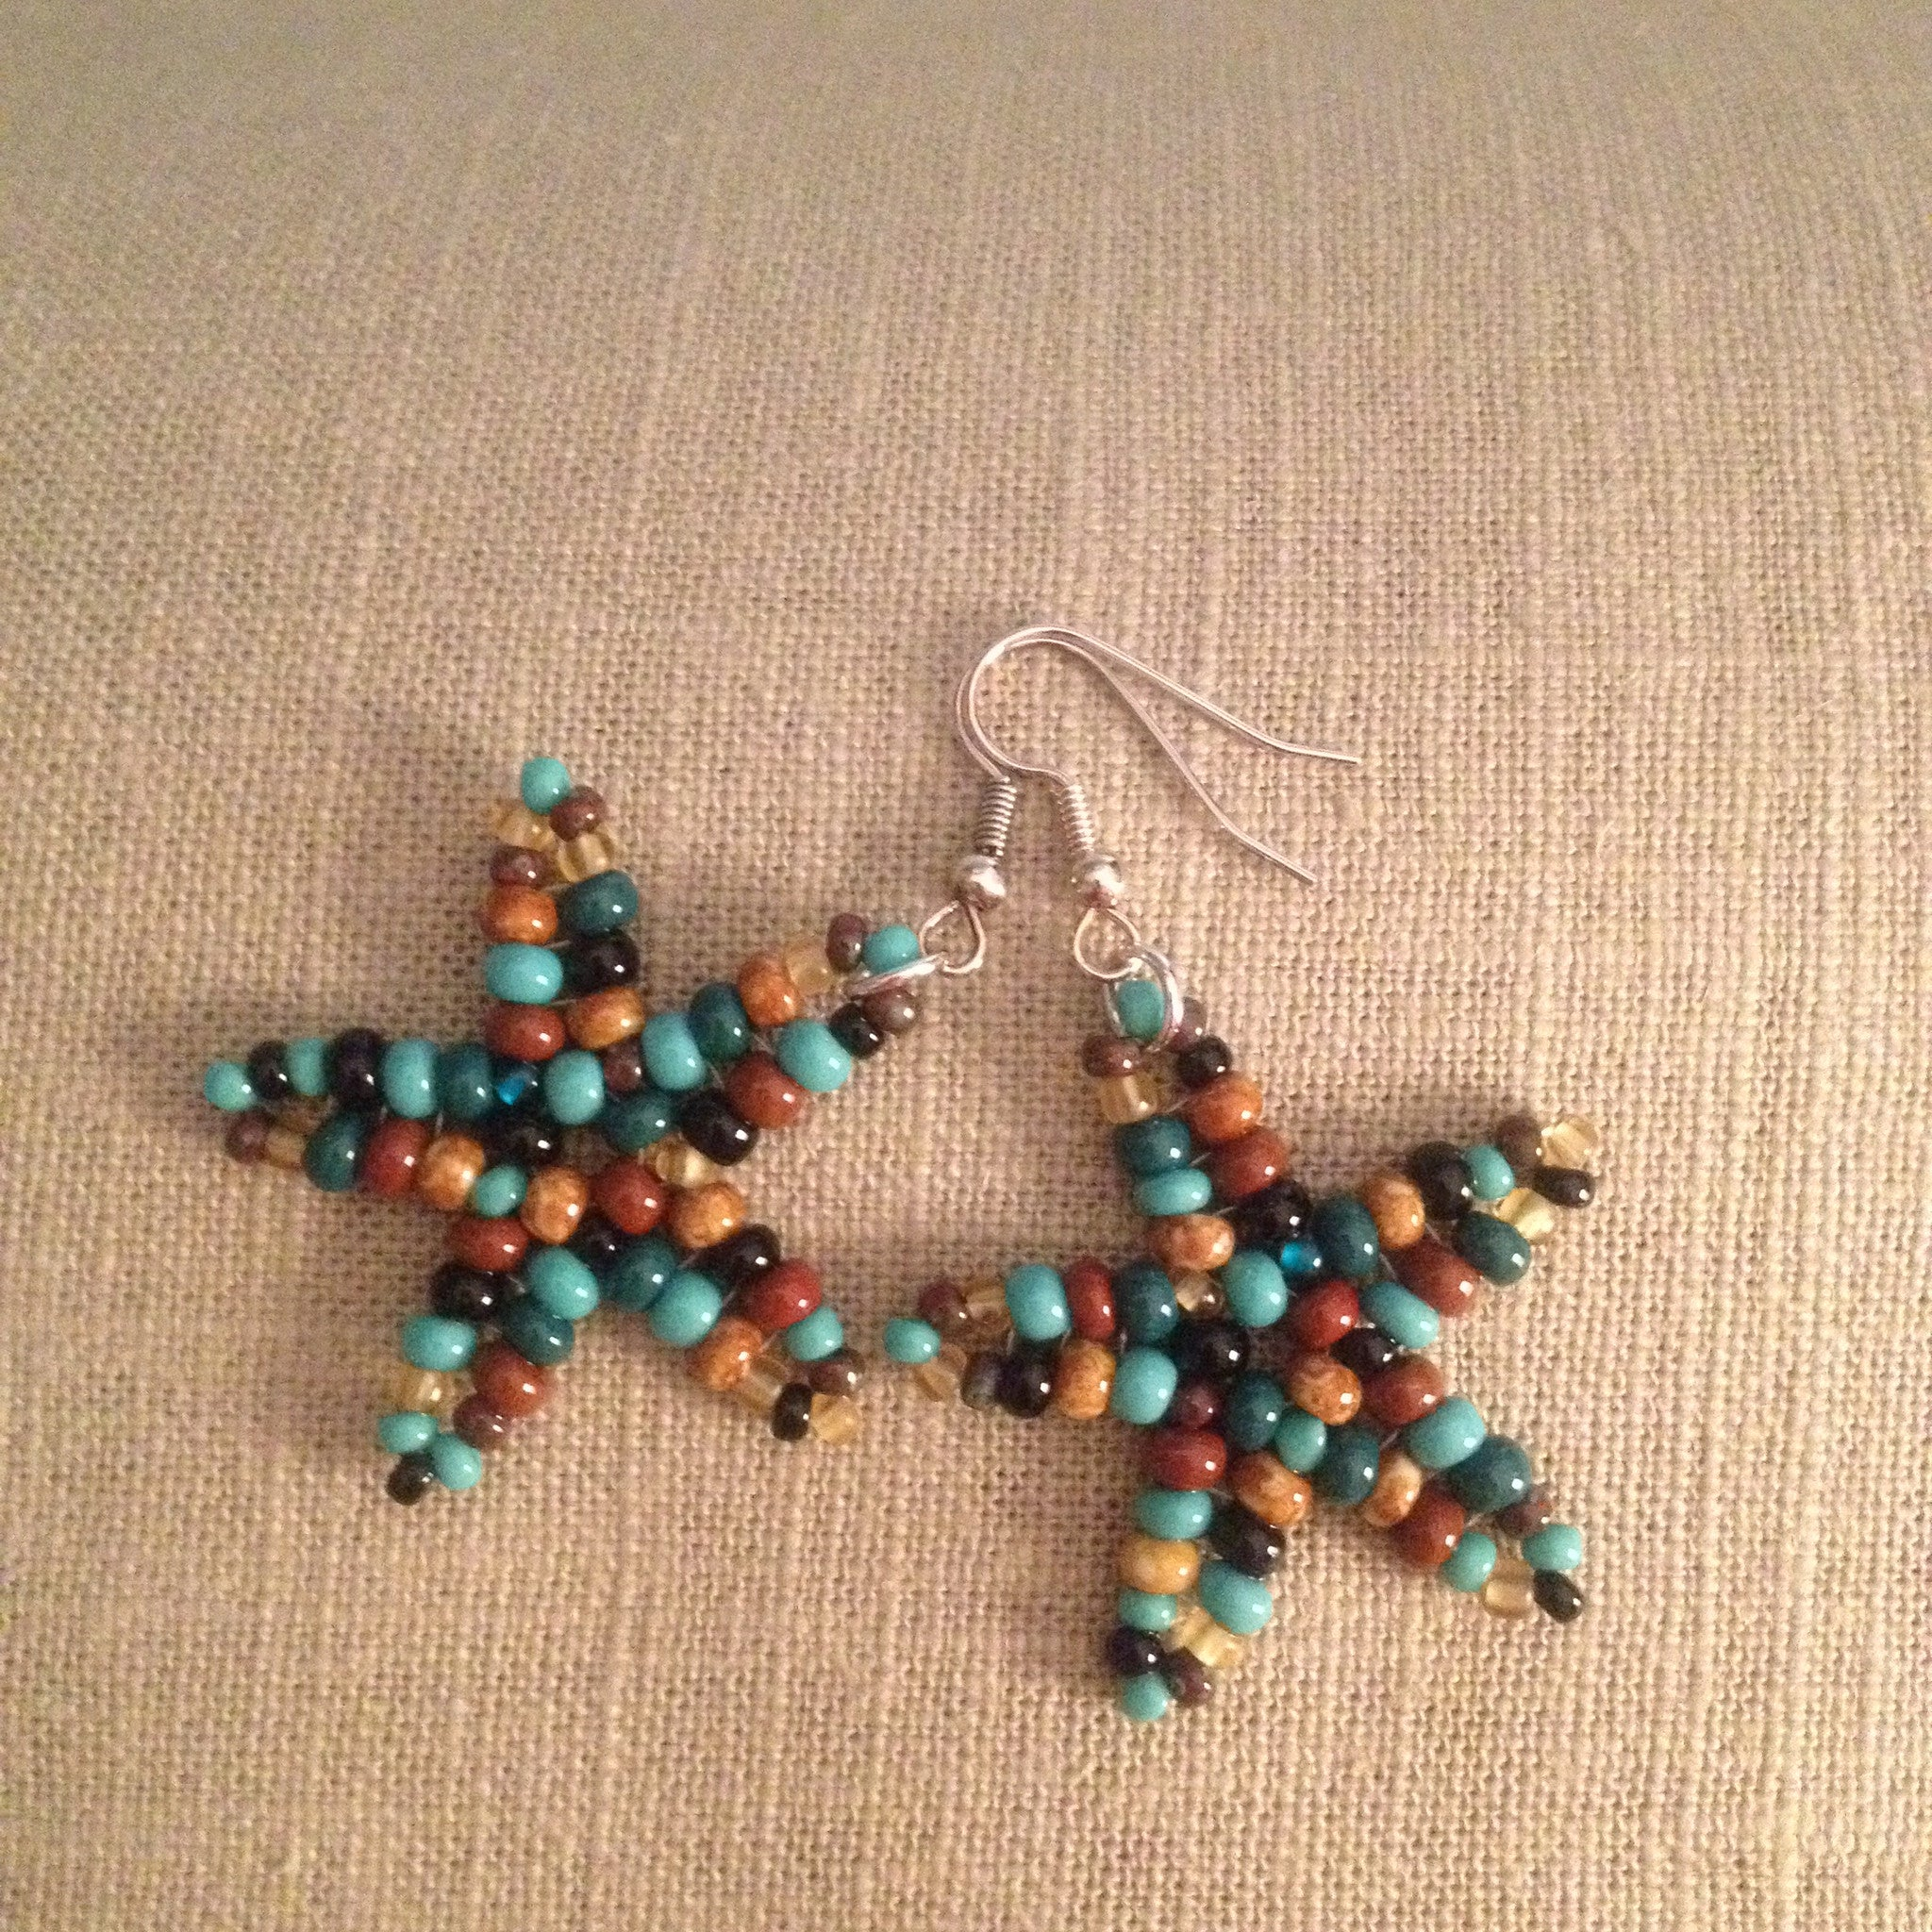 Starfish beaded earrings southwest multi colors resort cruise wear beachy fun style